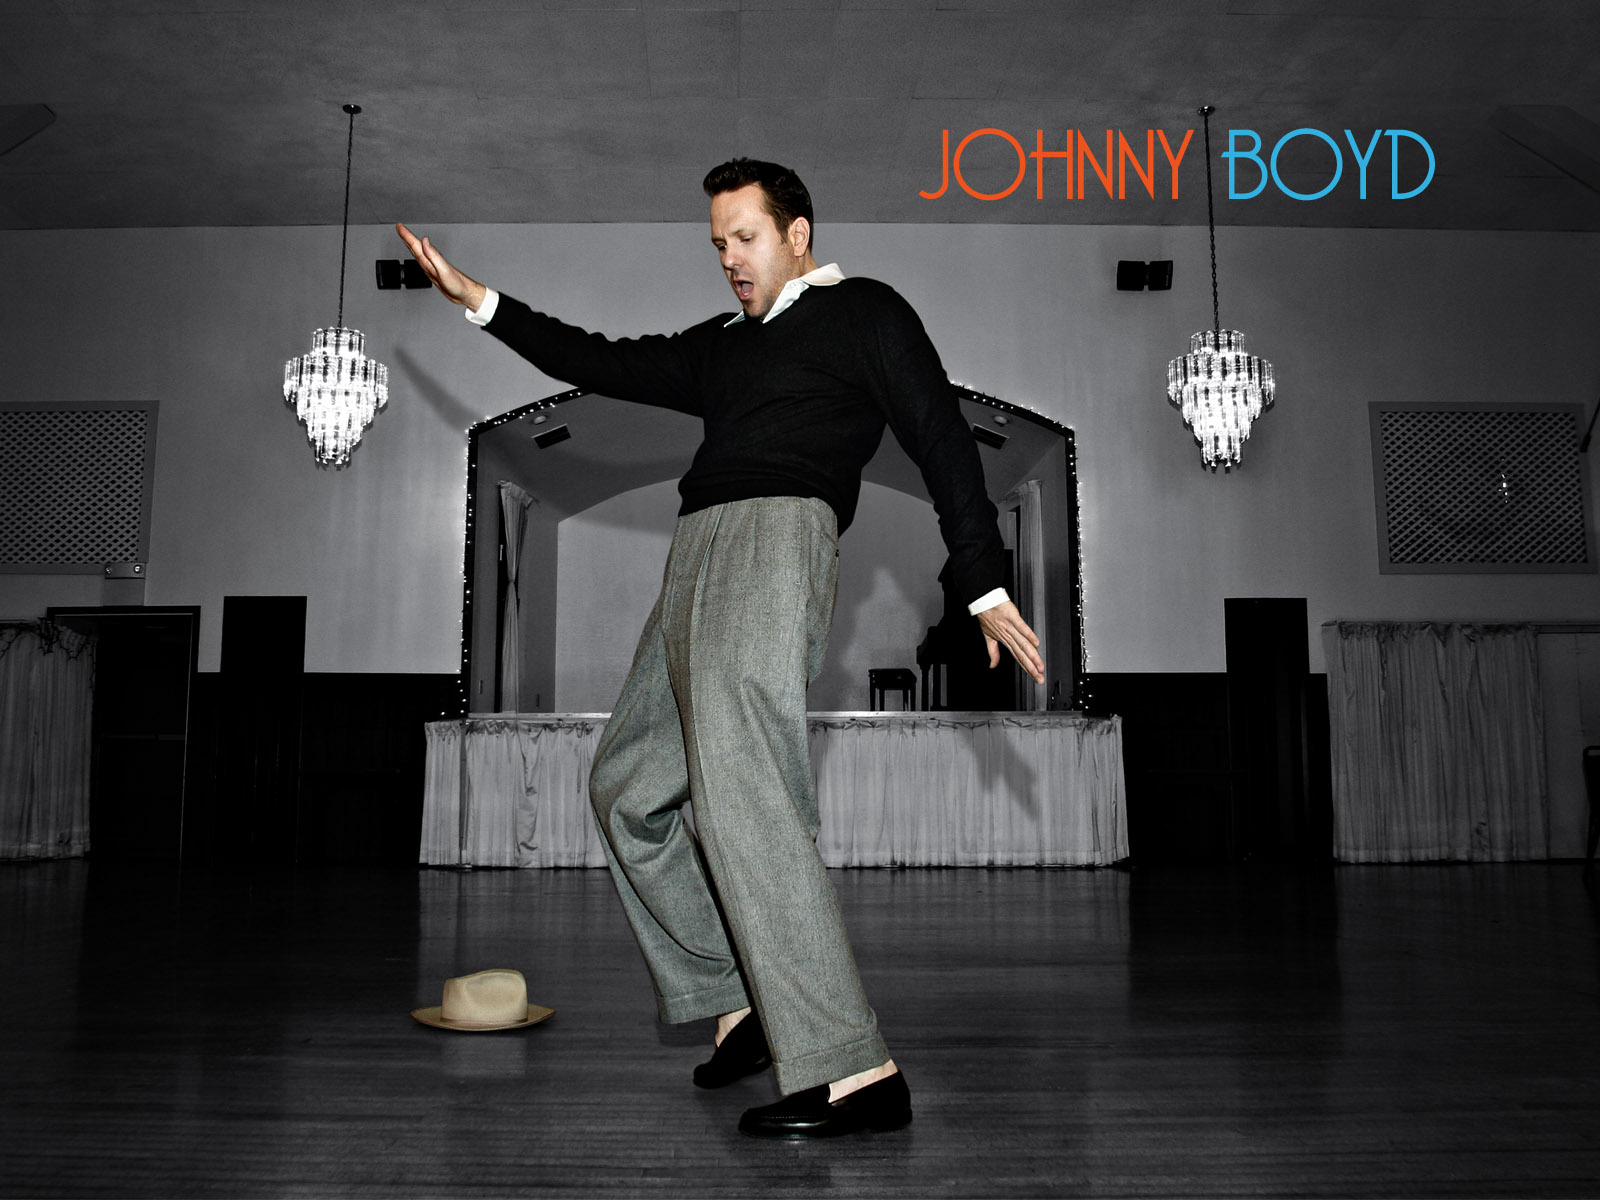 Johnny_Boyd_Wallpaper2_1600x1200.jpg